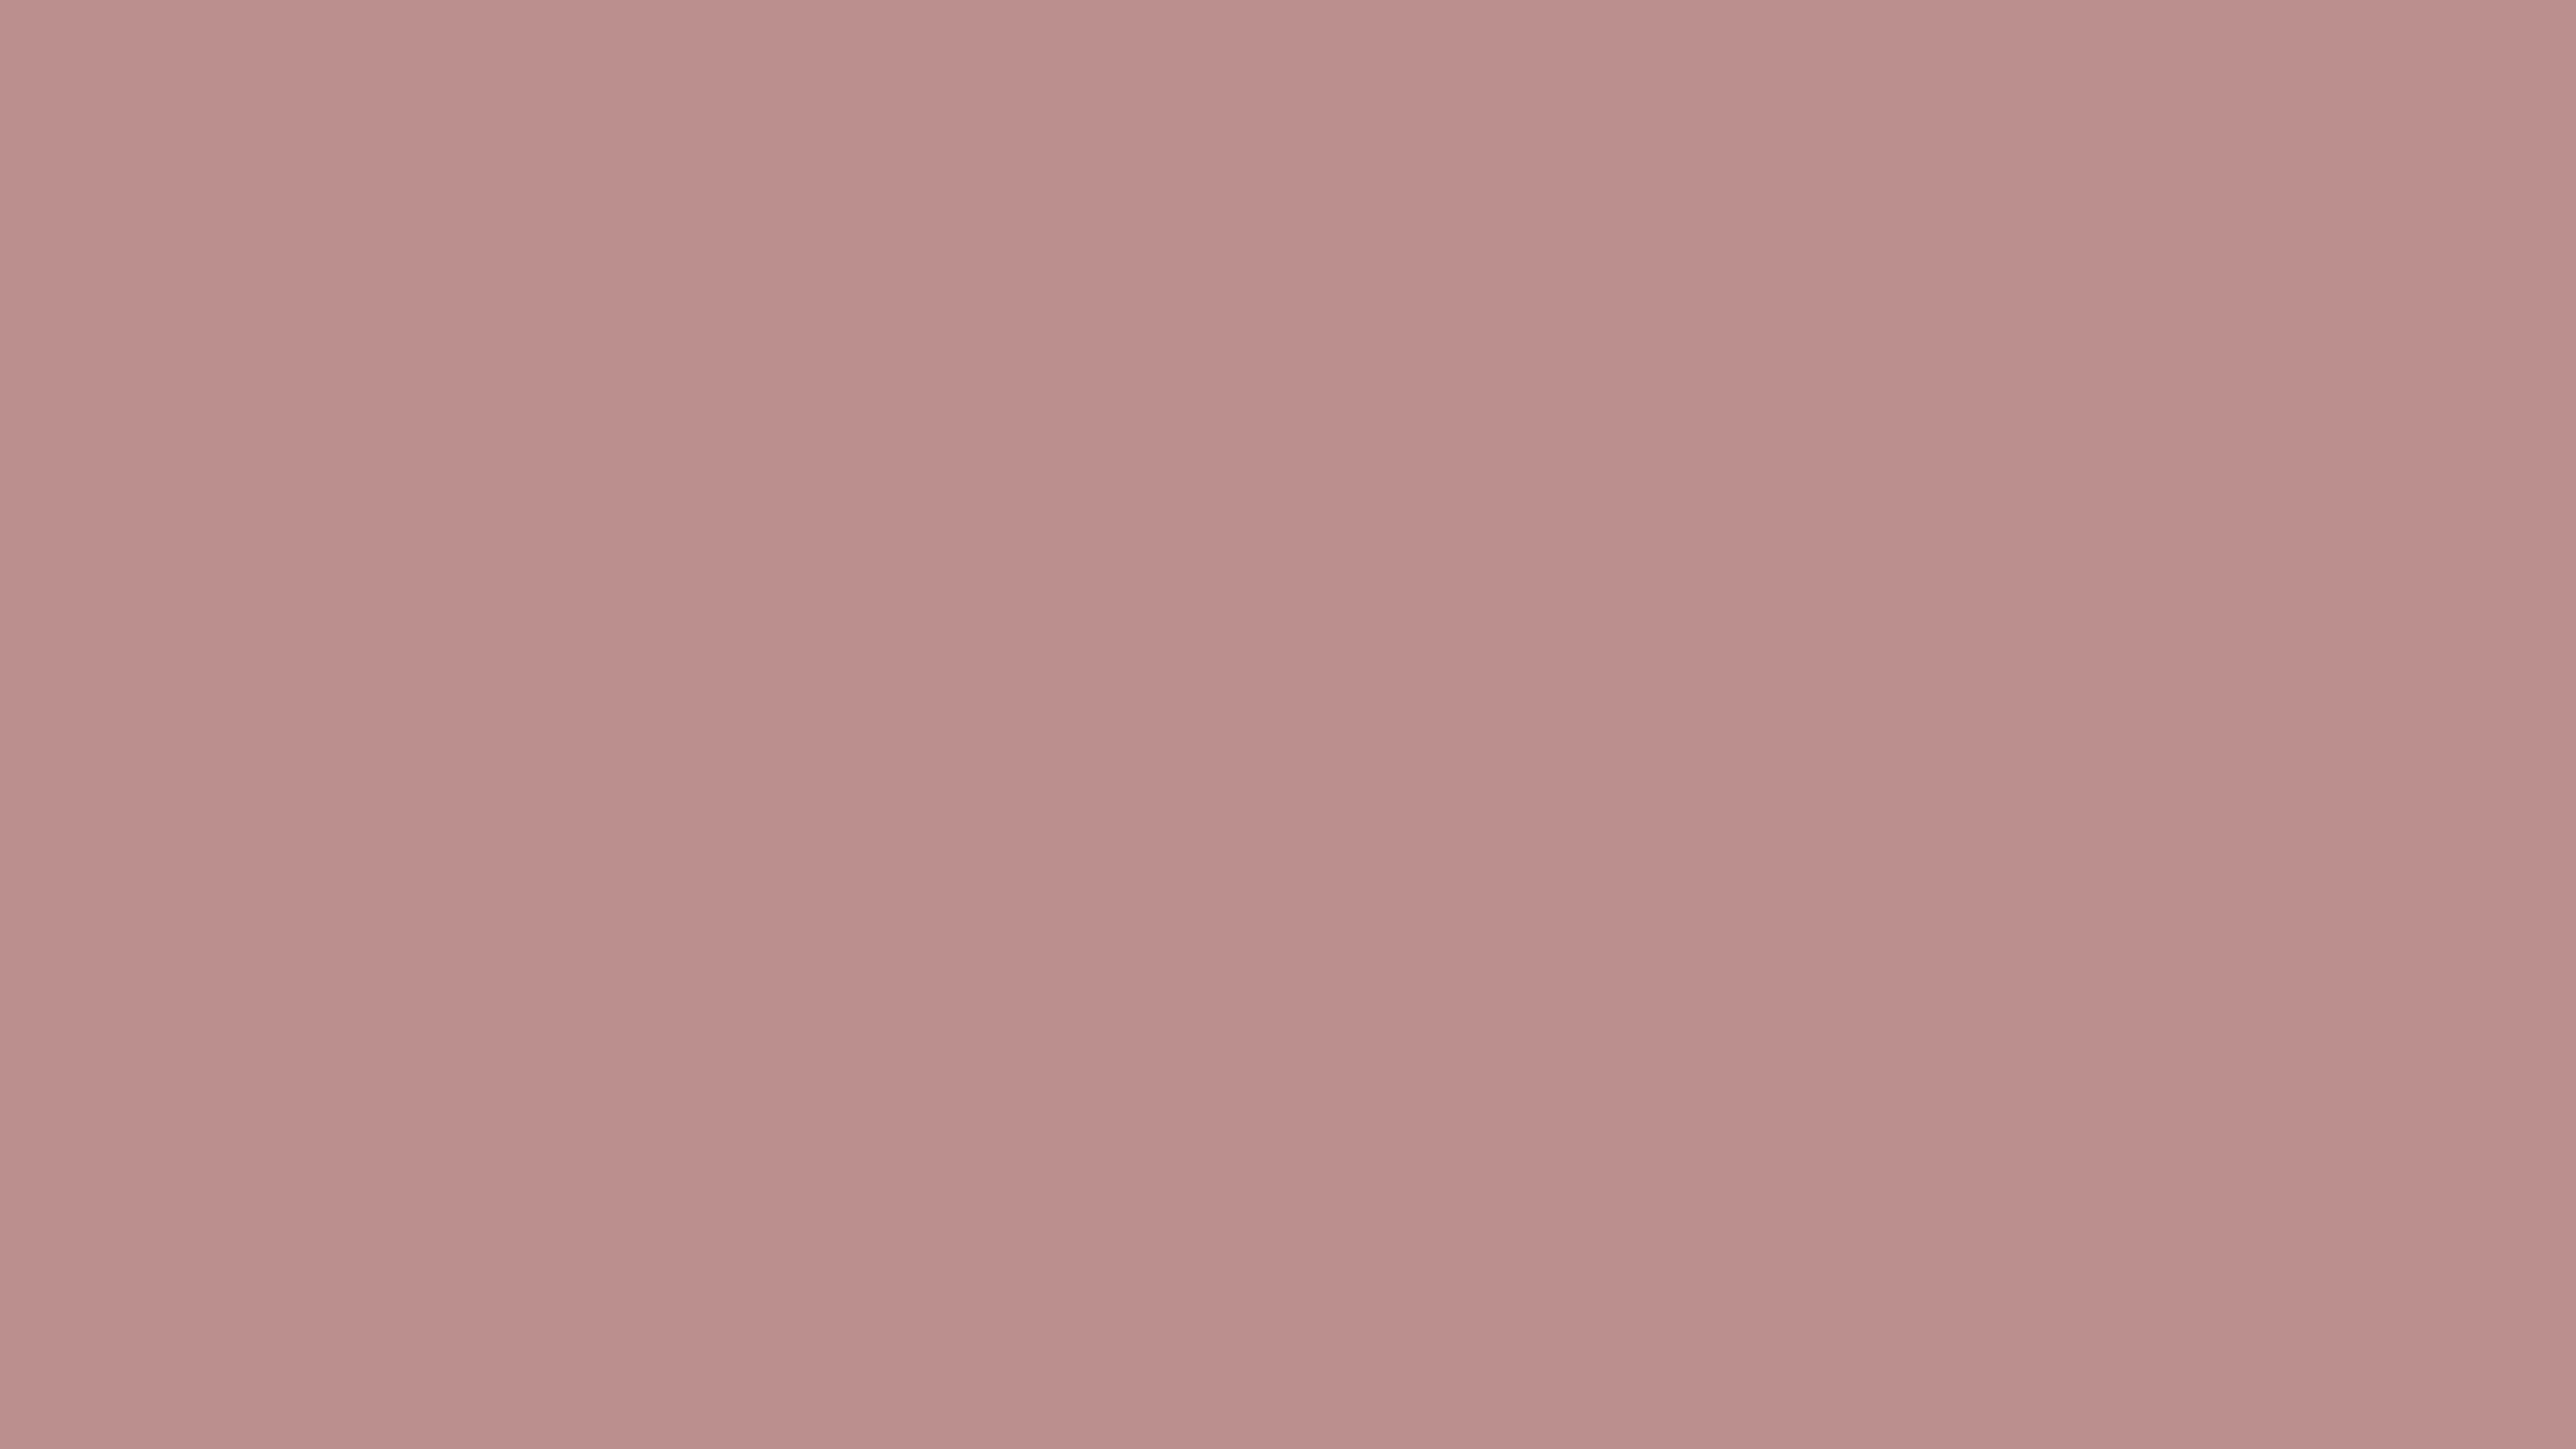 4096x2304 Rosy Brown Solid Color Background